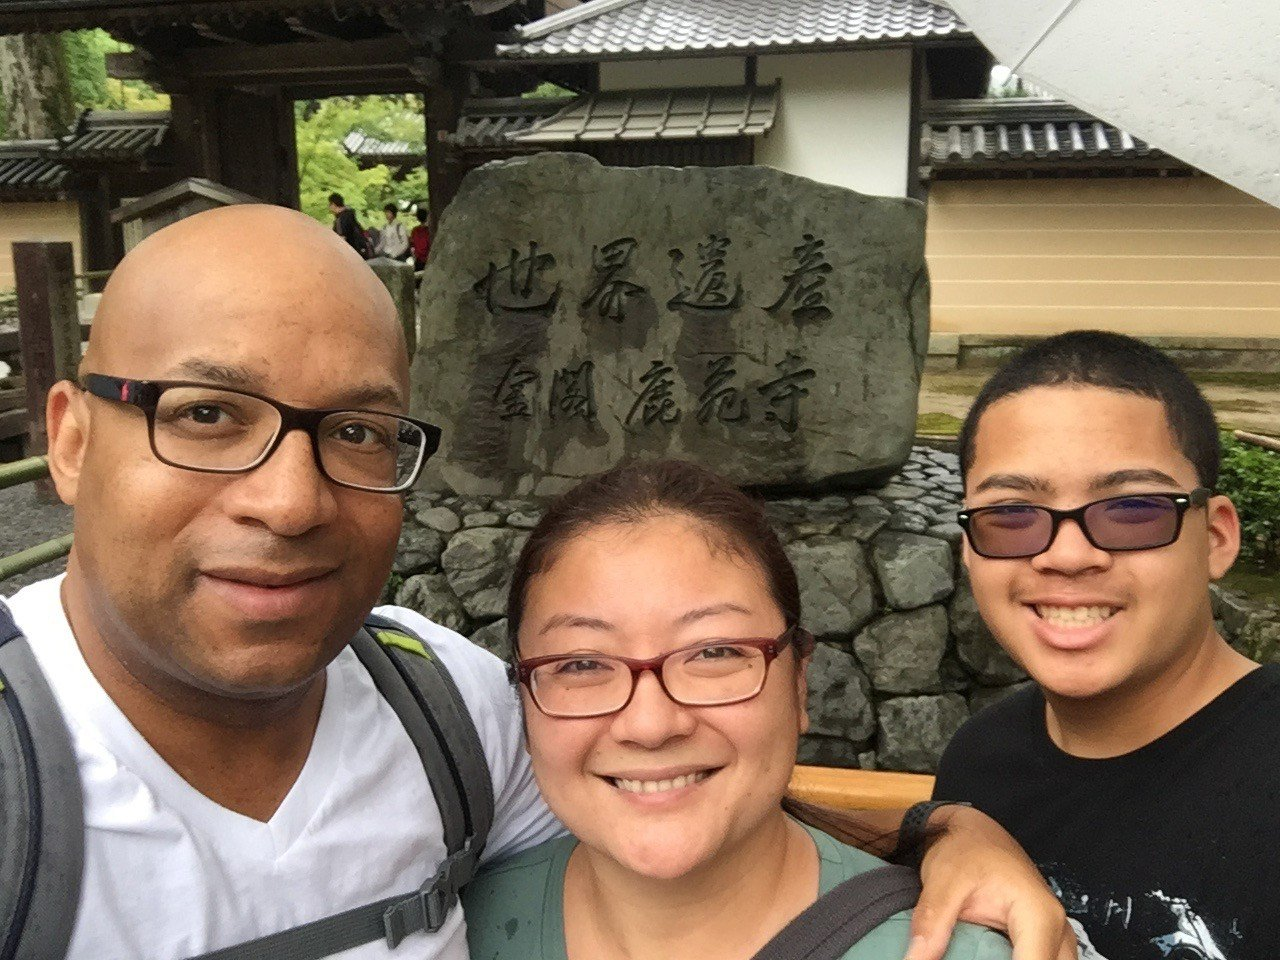 What Should You Wear While Traveling In Japan - Summer Trip To Japan - Kinkakuji Temple